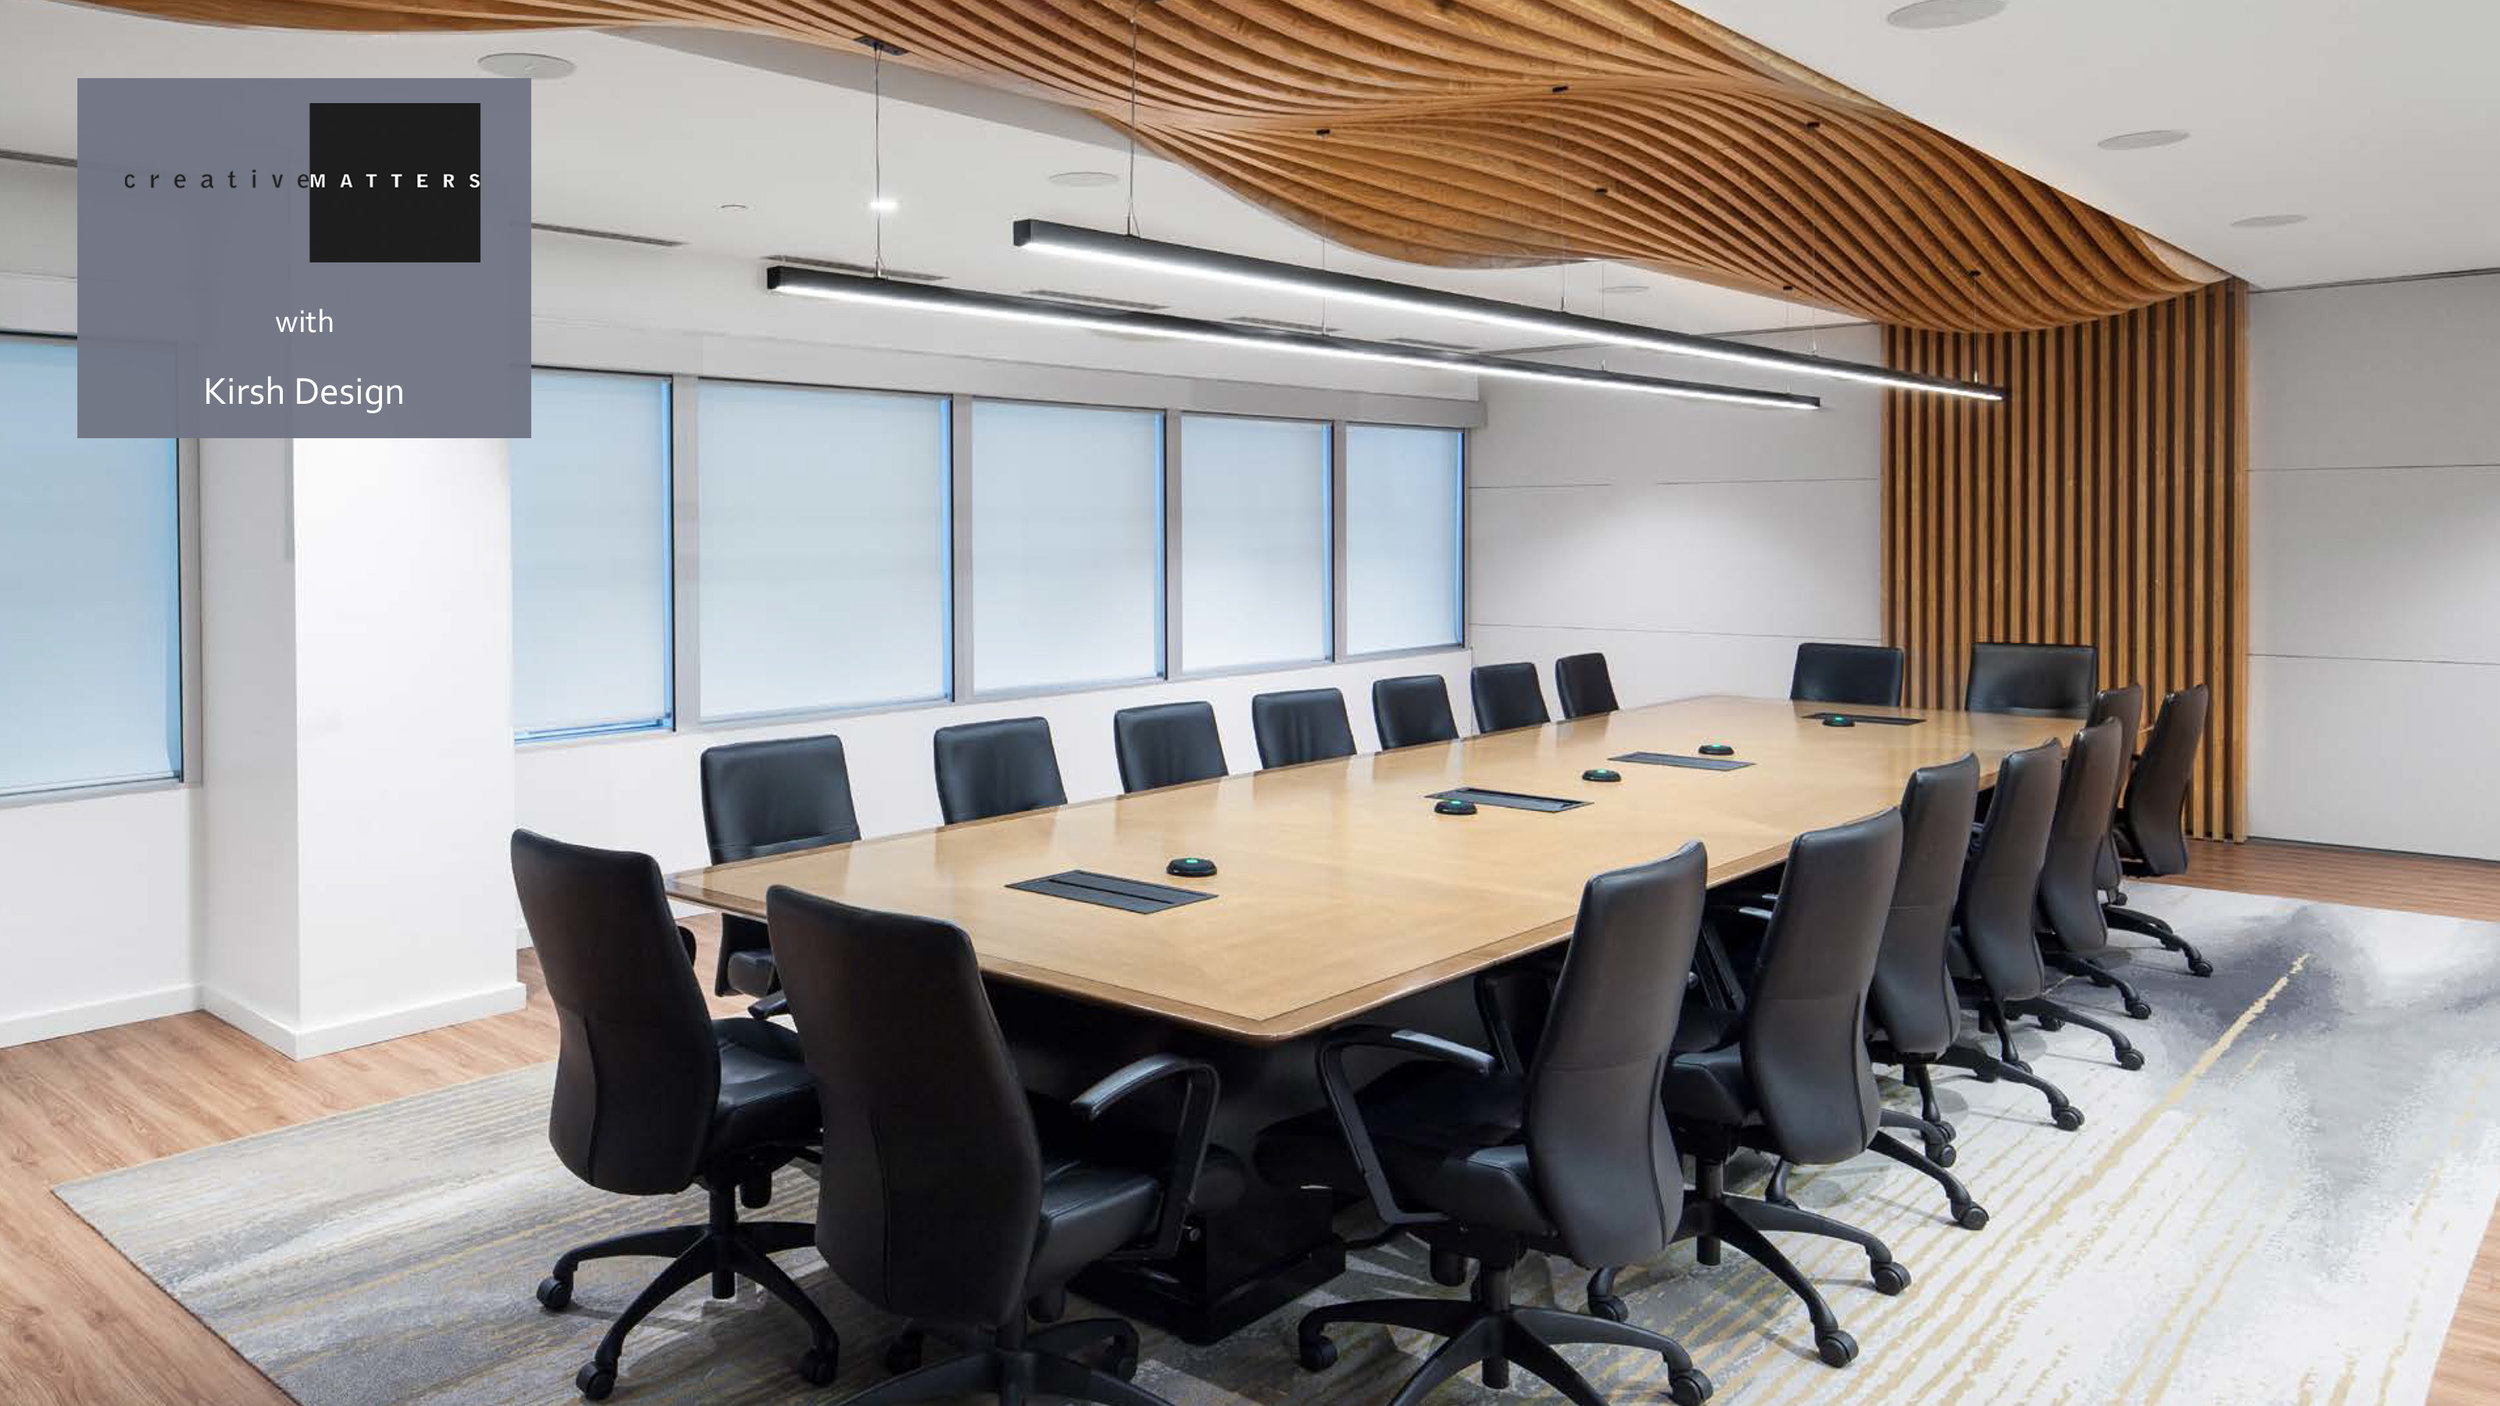 When Equitable Bank was looking for a rug for their Toronto boardroom, they browsed our XXV Collection and spied the potential of the Orchestra design. Attracted to the beauty of the gold and silver, this concept best complemented the excitement of the room's undulating ceiling. We created a custom eight-colour interpretation, and recommended handtufted wool with loop pile to withstand the physical stresses of a boardroom. The finished result is the perfect accompaniment to the space, elegant, harmonious and sophisticated.    Project: Boardroom of Equitable Bank, Toronto Interior Designer: Kirsh Design Rug: 100% wool, handtufted in Thailand